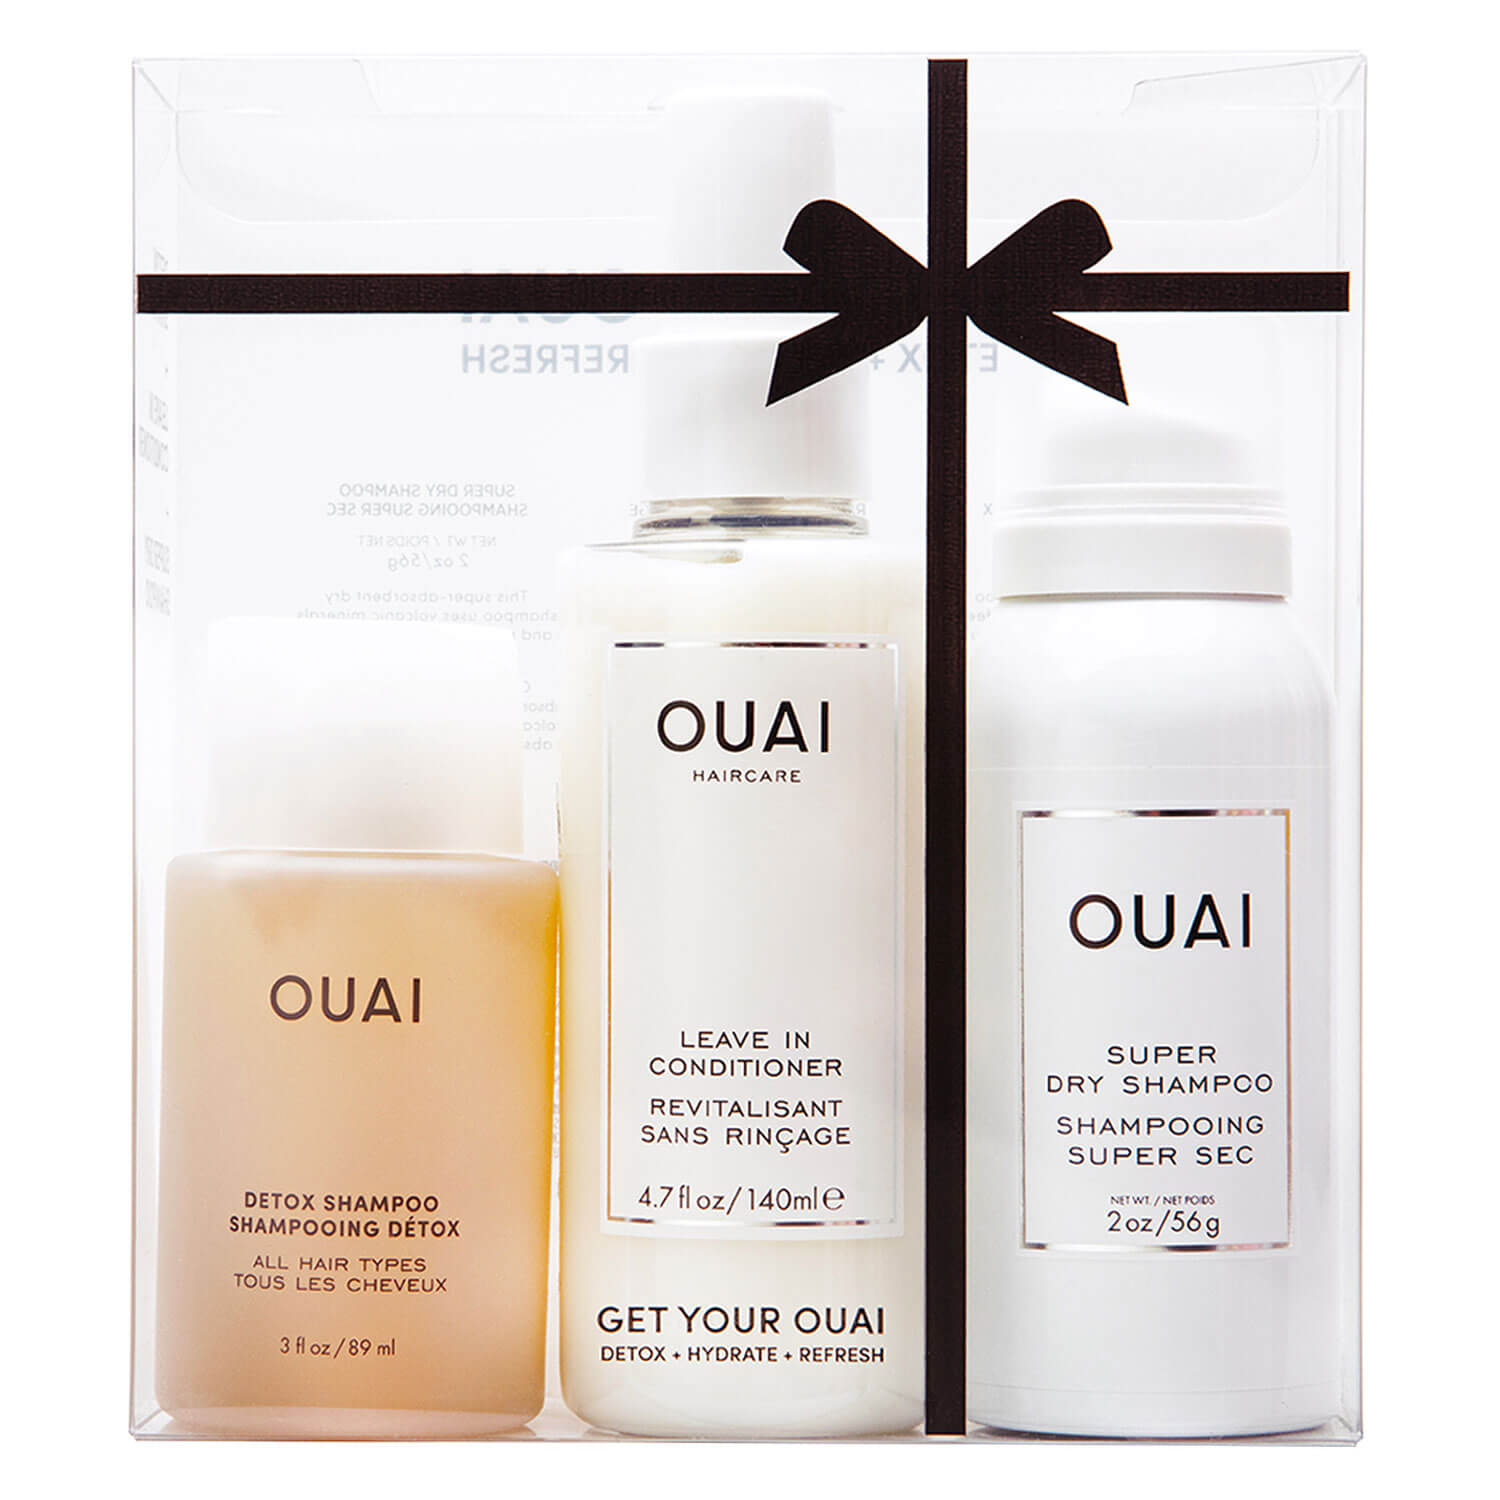 OUAI - Get Your Ouai Set